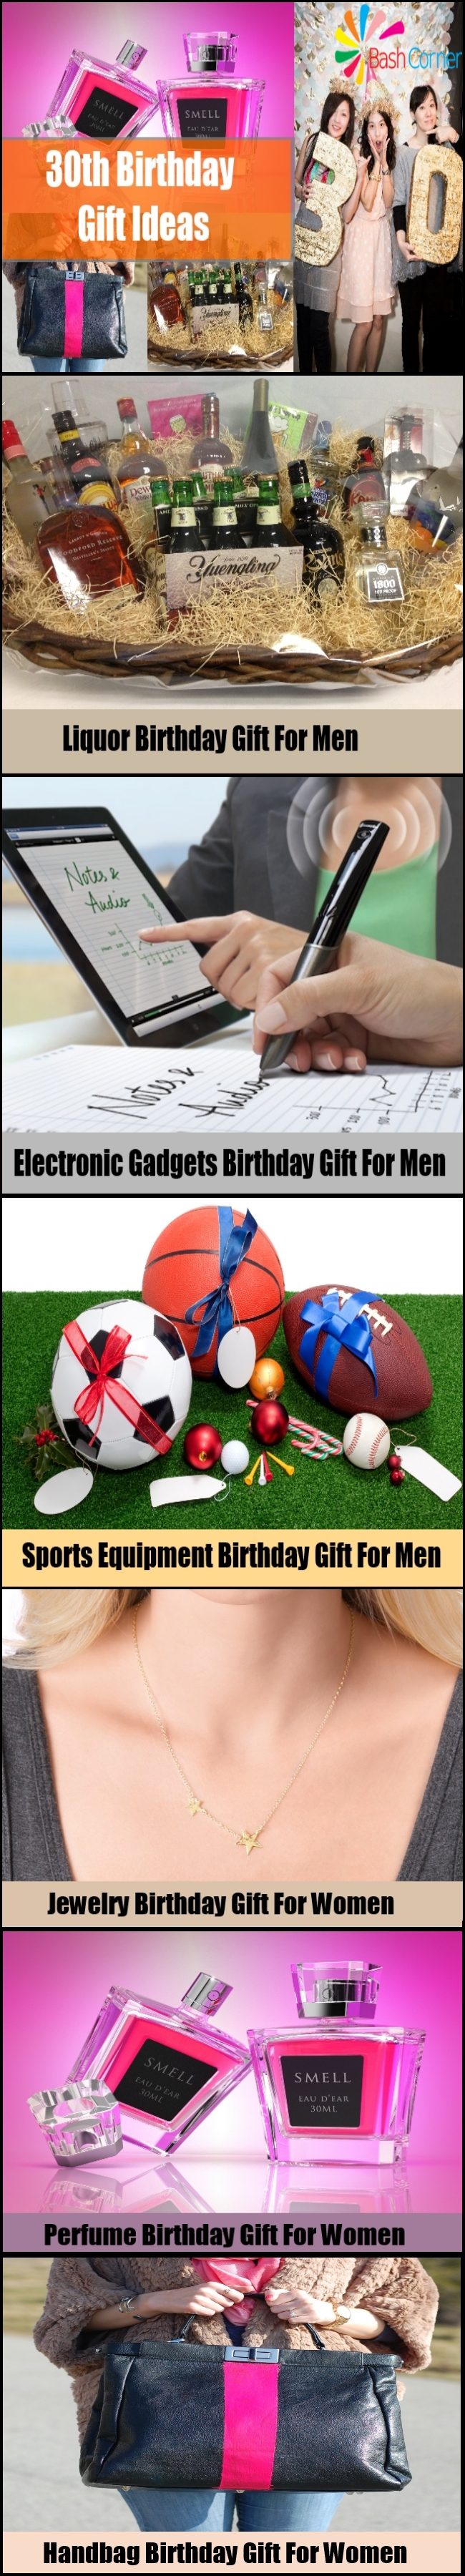 30th Birthday Gift Ideas For Men And Women | Gift Ideas ...